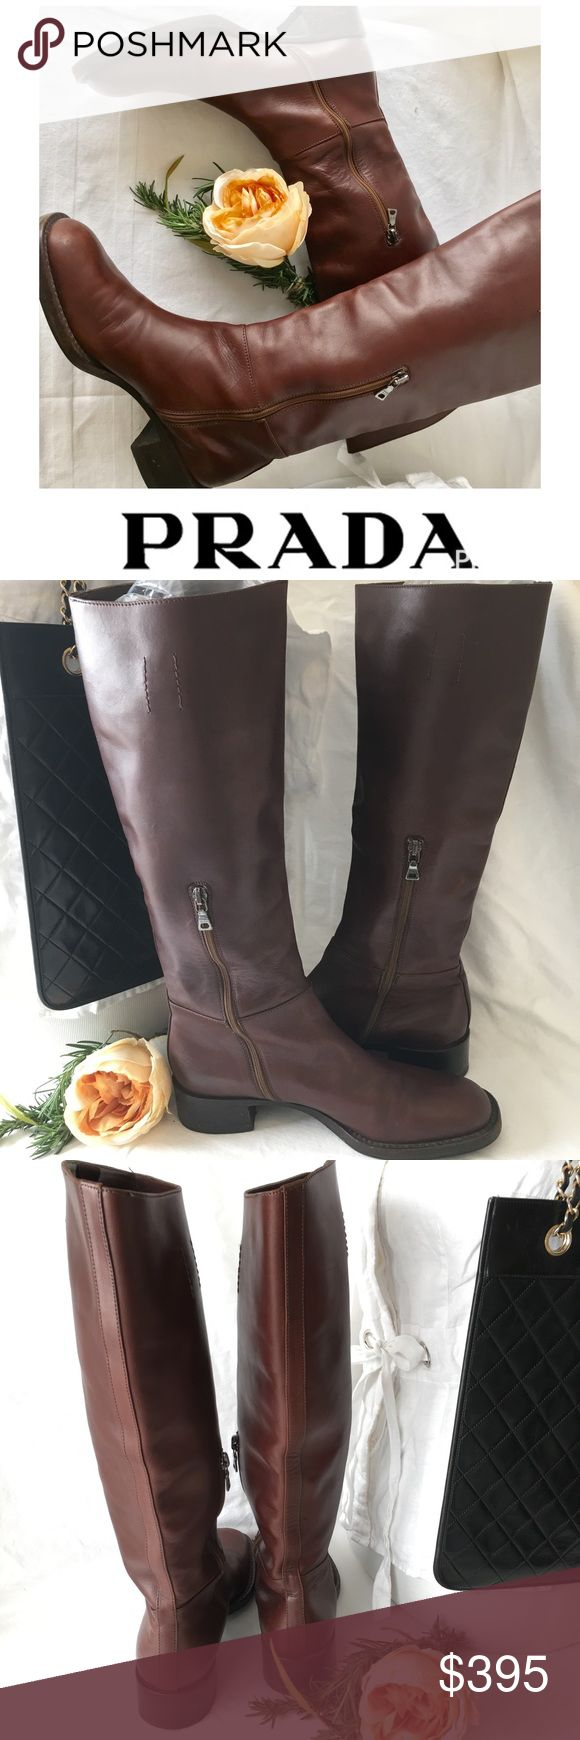 Prada Brown leather riding boots These are authentic Prada riding boots .... they are made of smooth brown leather and in pristine condition. Happy poshing🌷 Prada Shoes Winter & Rain Boots